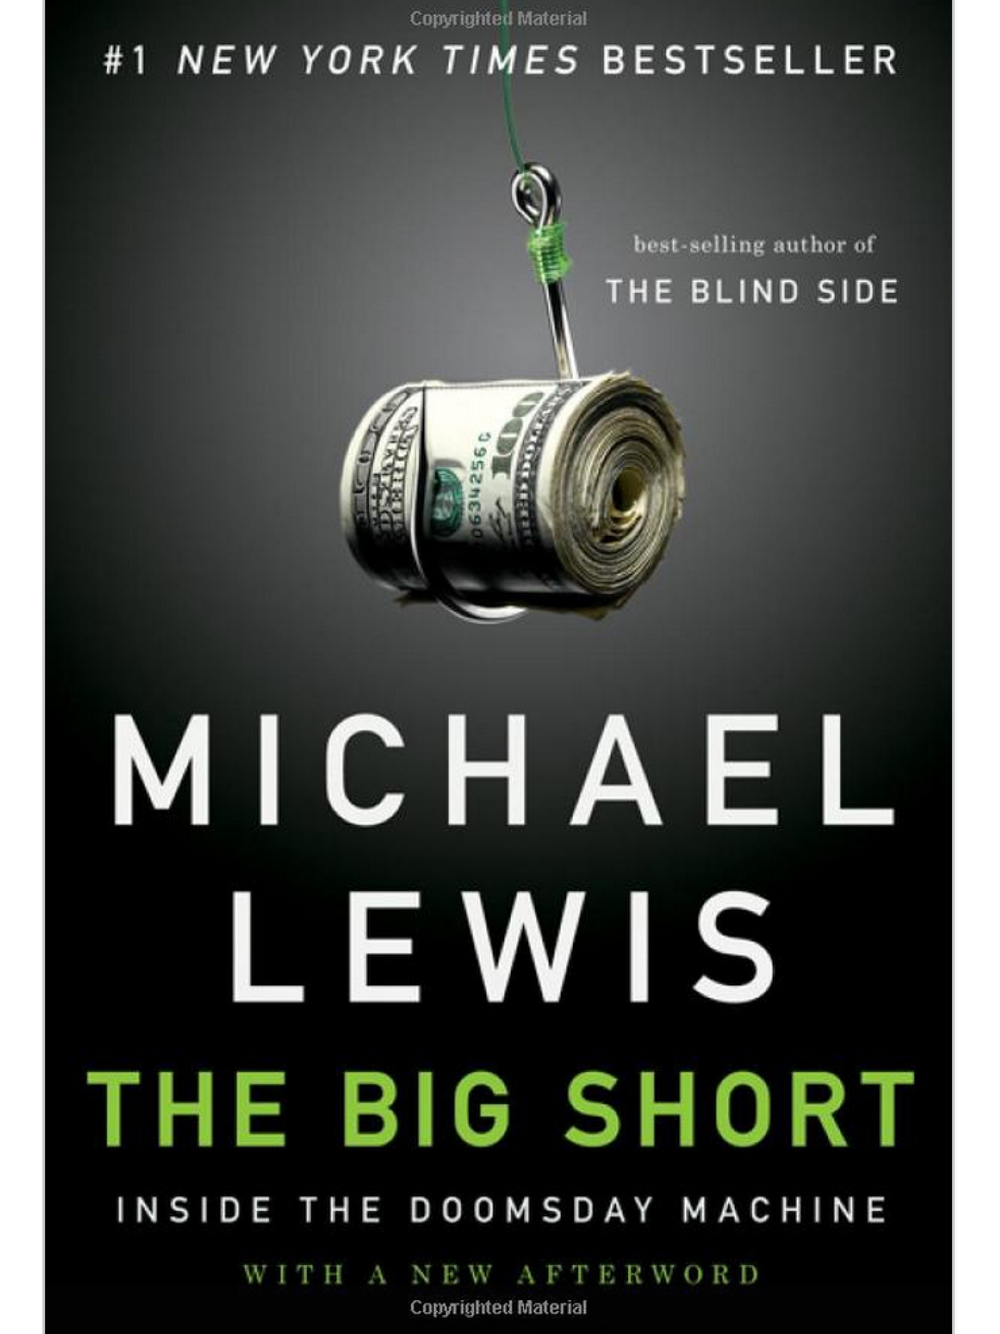 The Big Short: Inside the Doomsday Machine. Michael Lewis March 2010